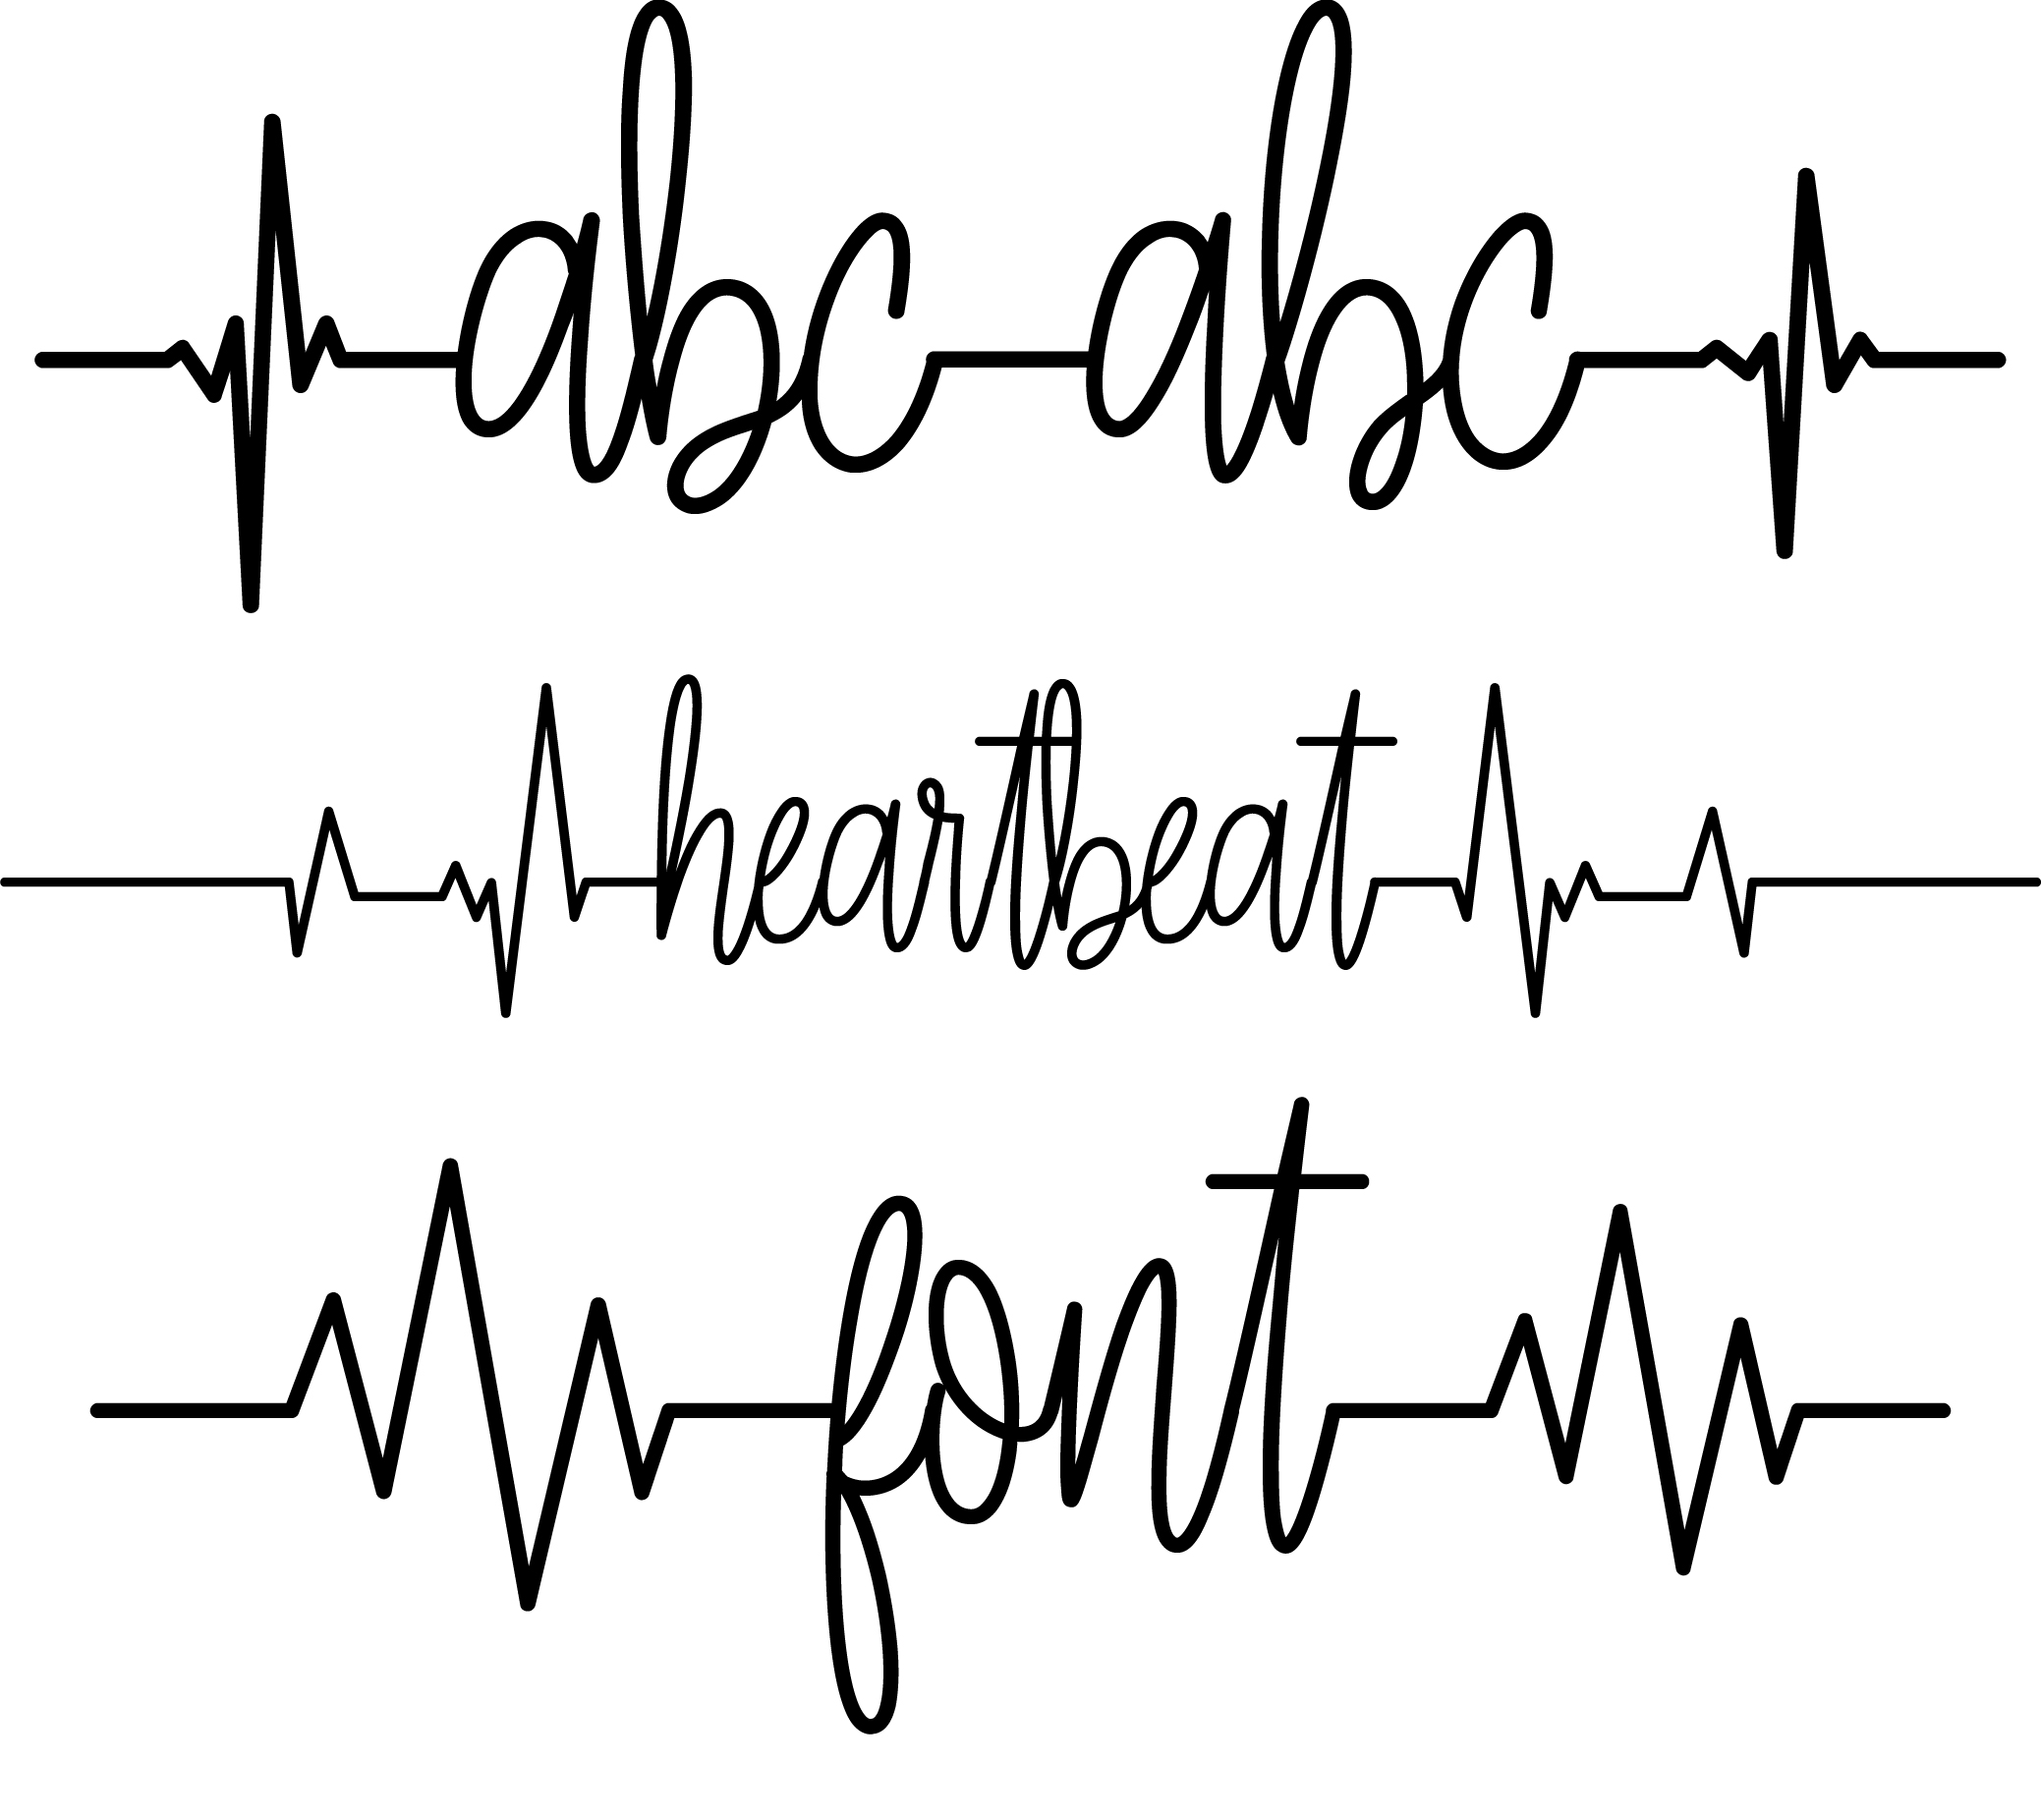 5 fonts auto electrical wiring diagramfree photo heart beat medical heartbeat heart